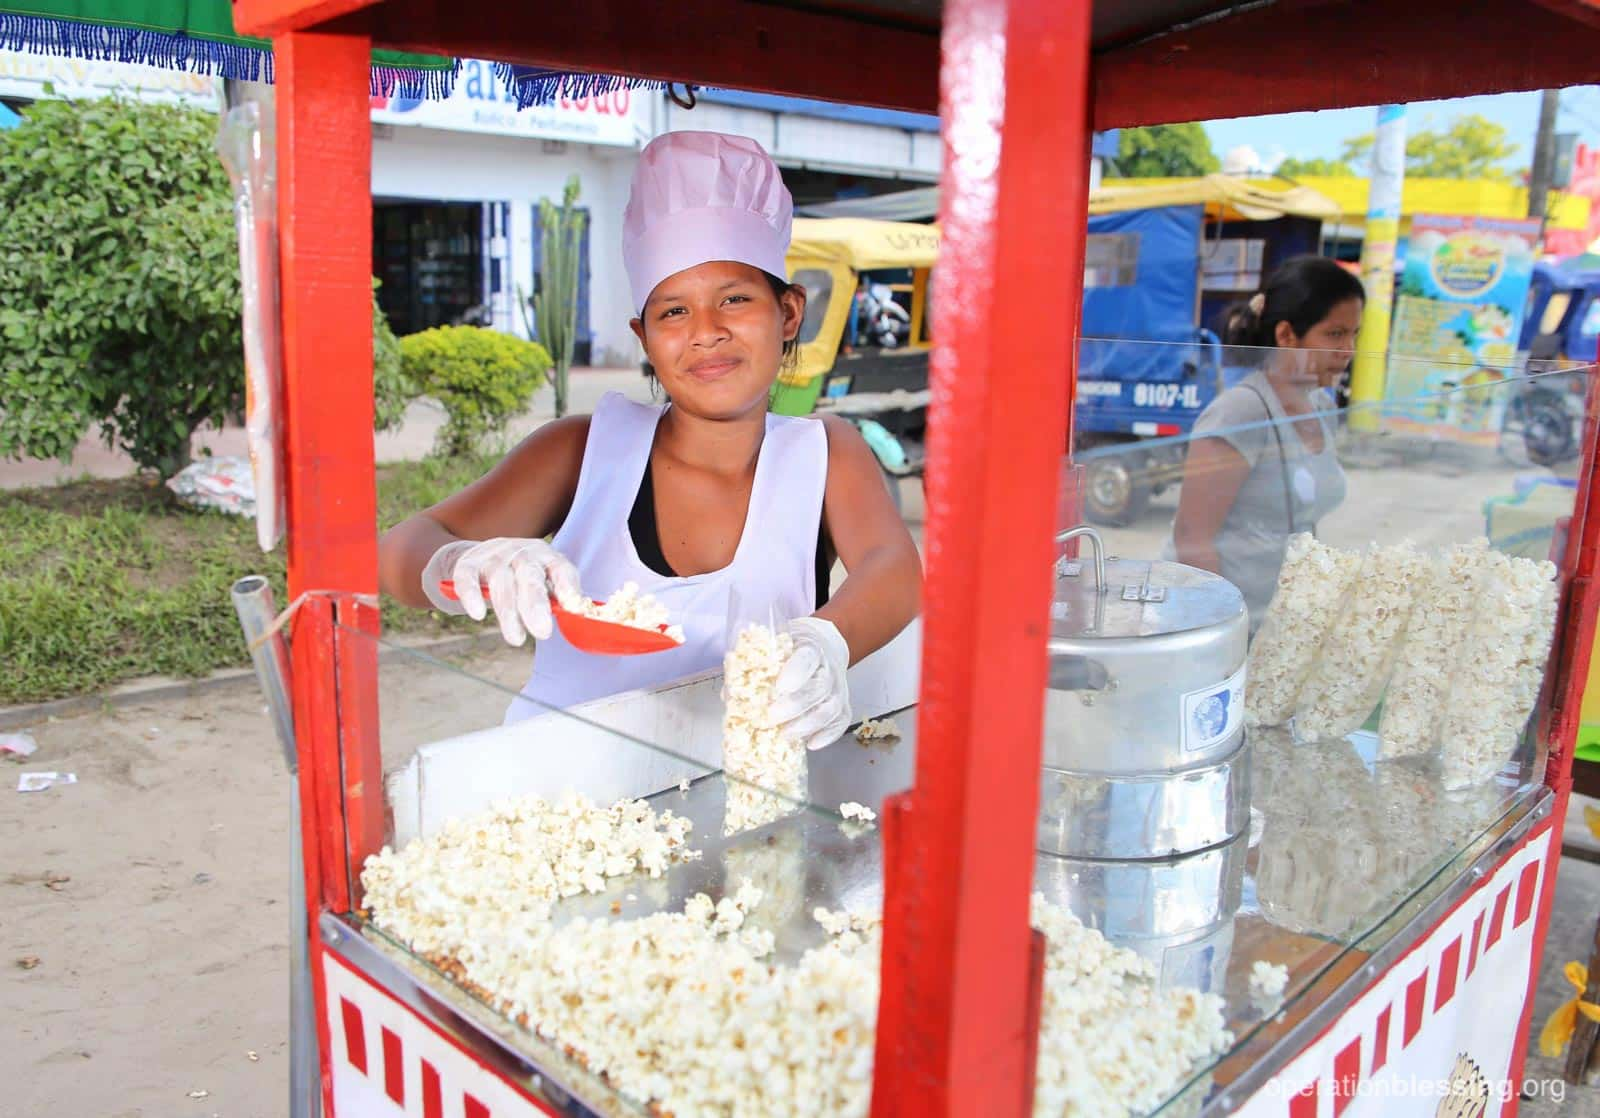 Ines serves popcorn from her refurbished popcorn cart, which will help her earn an income for her new baby.